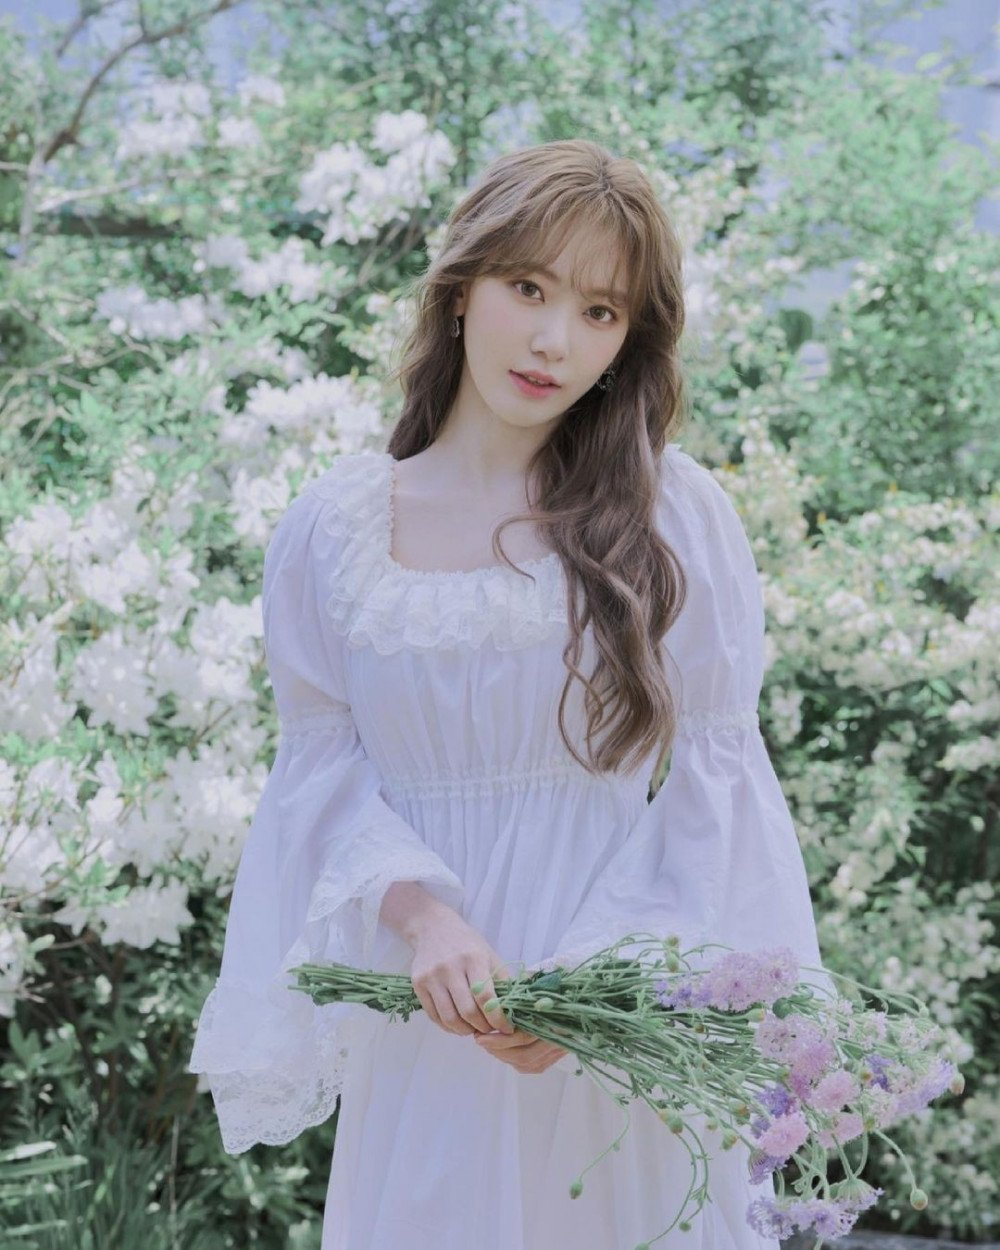 Here you can find products of miyawaki. Miyawaki Sakura Updates Her Instagram For The First Time In 2 Years With Previews Of Her Htk48 Graduation Pictorial Allkpop